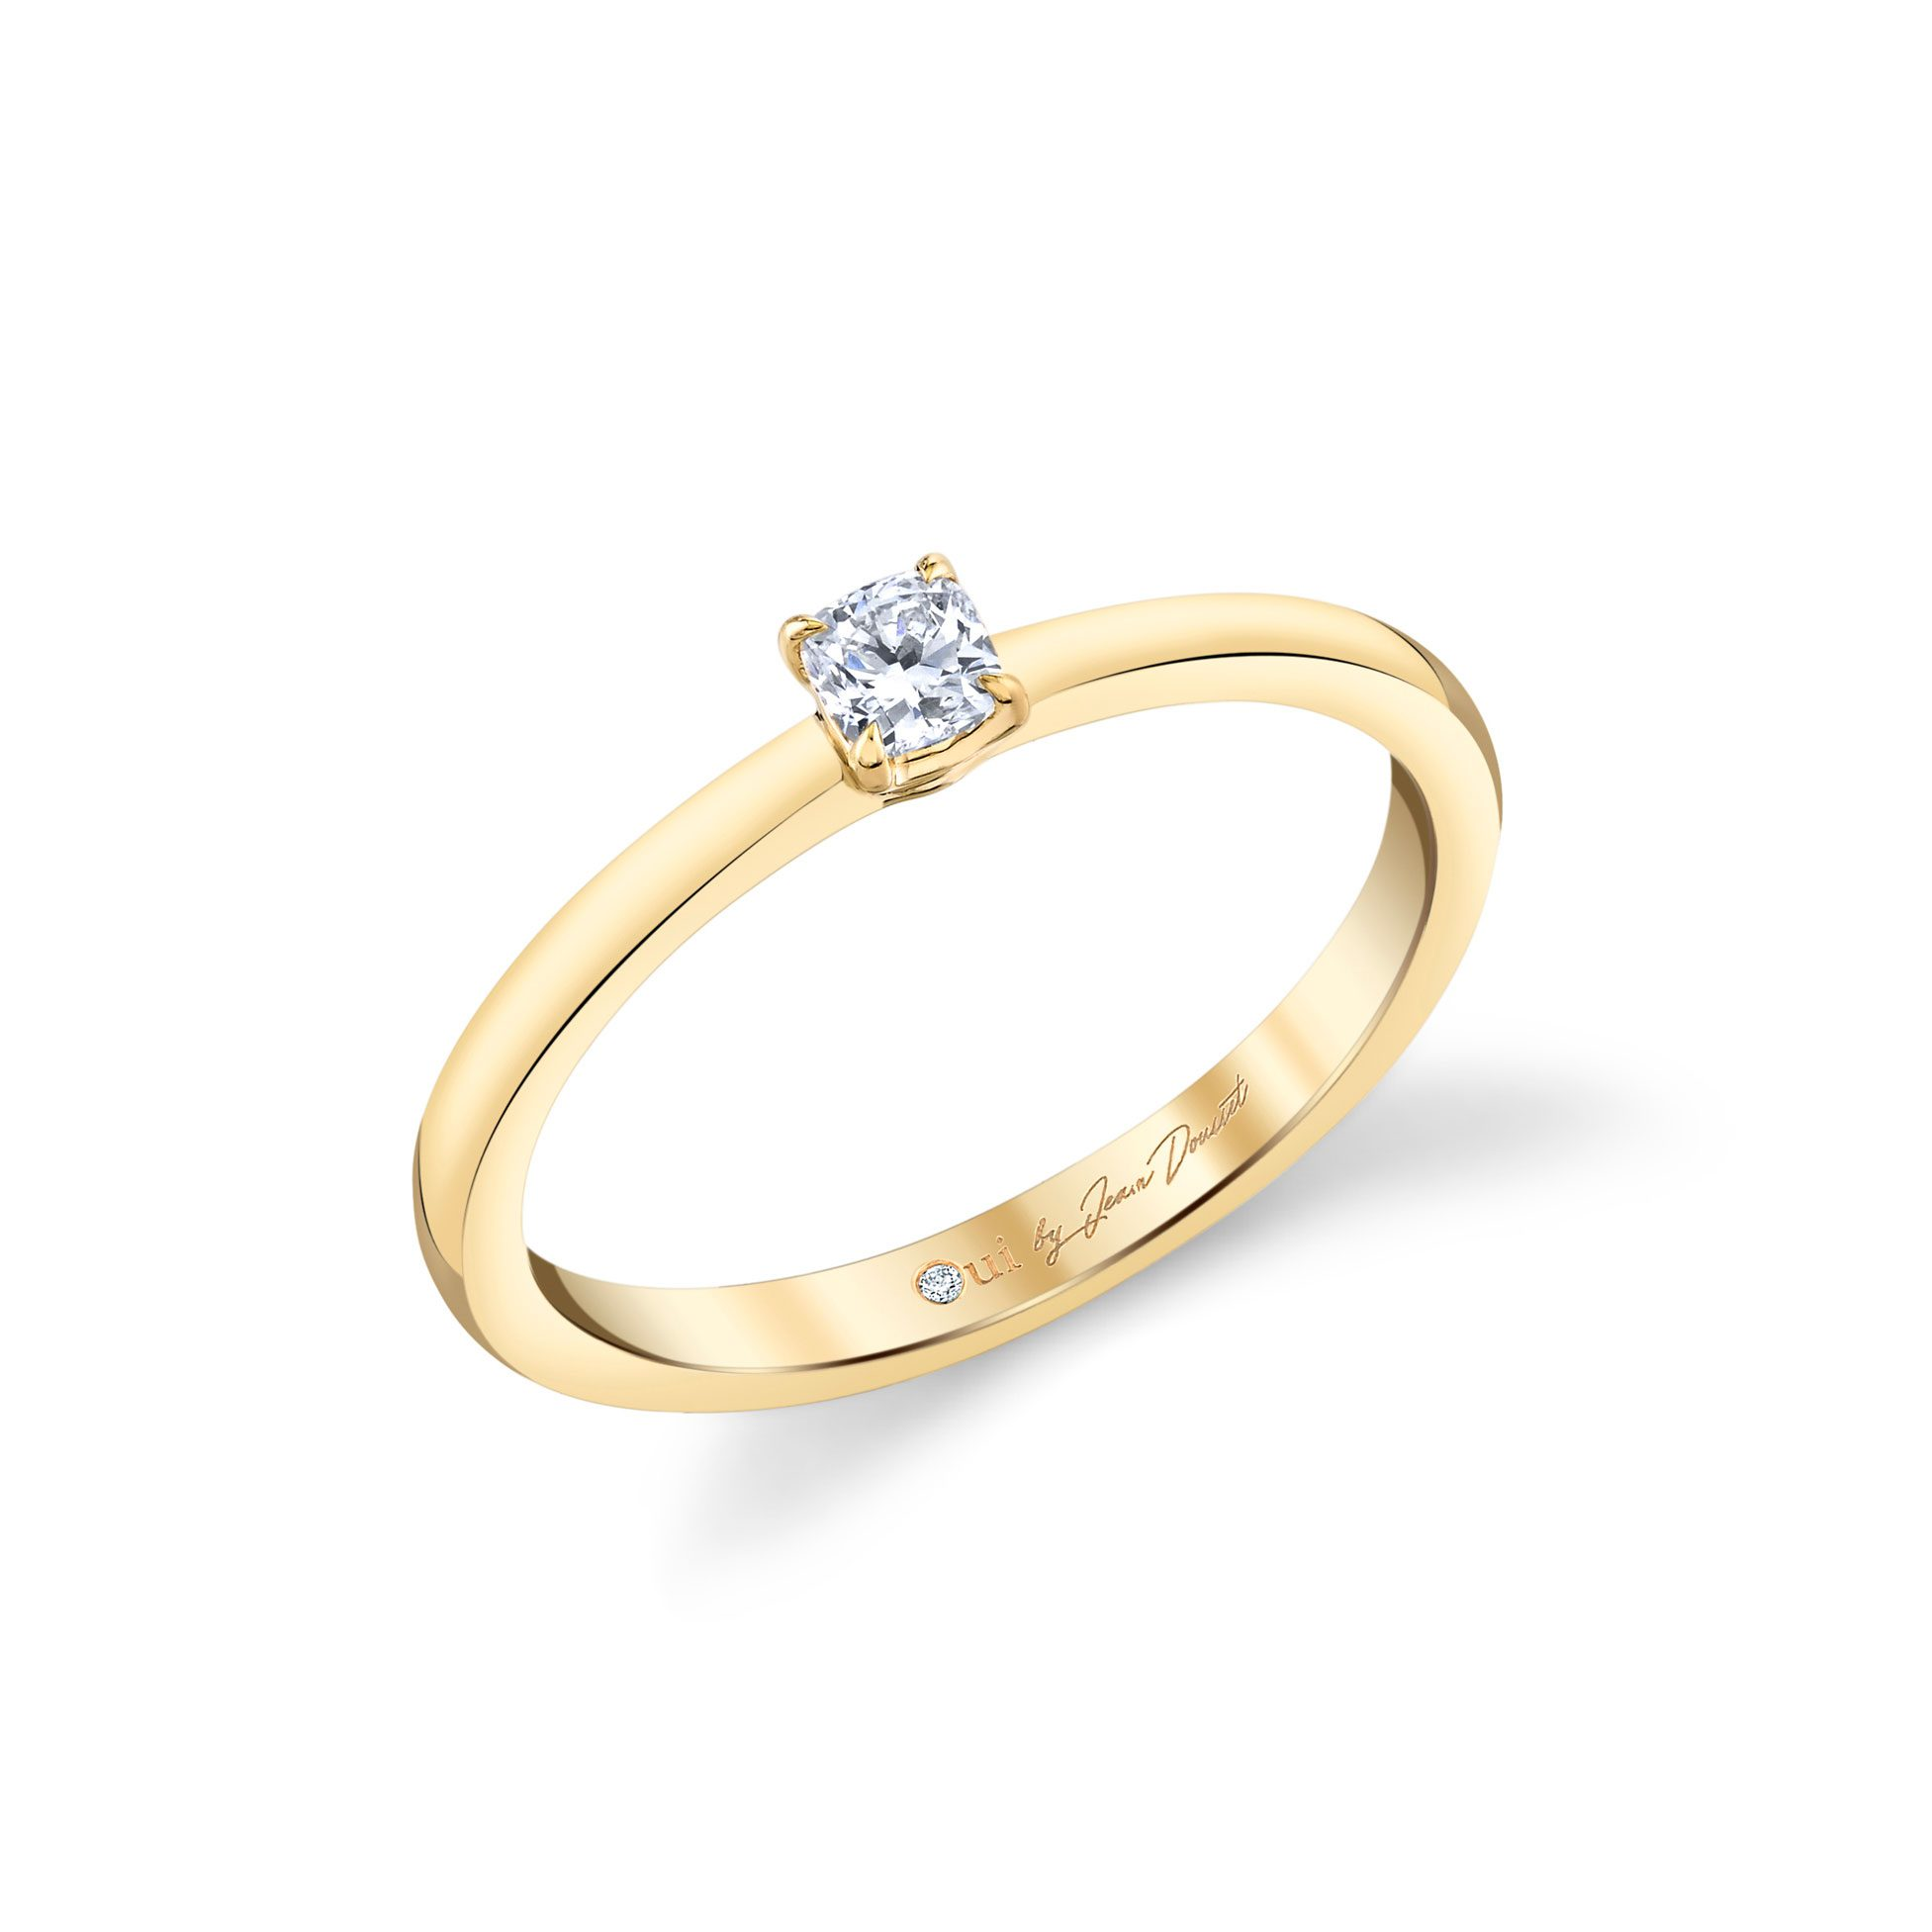 La Petite Cushion Diamond Wedding Band in 18k Yellow Gold Standing View by Oui by Jean Dousset